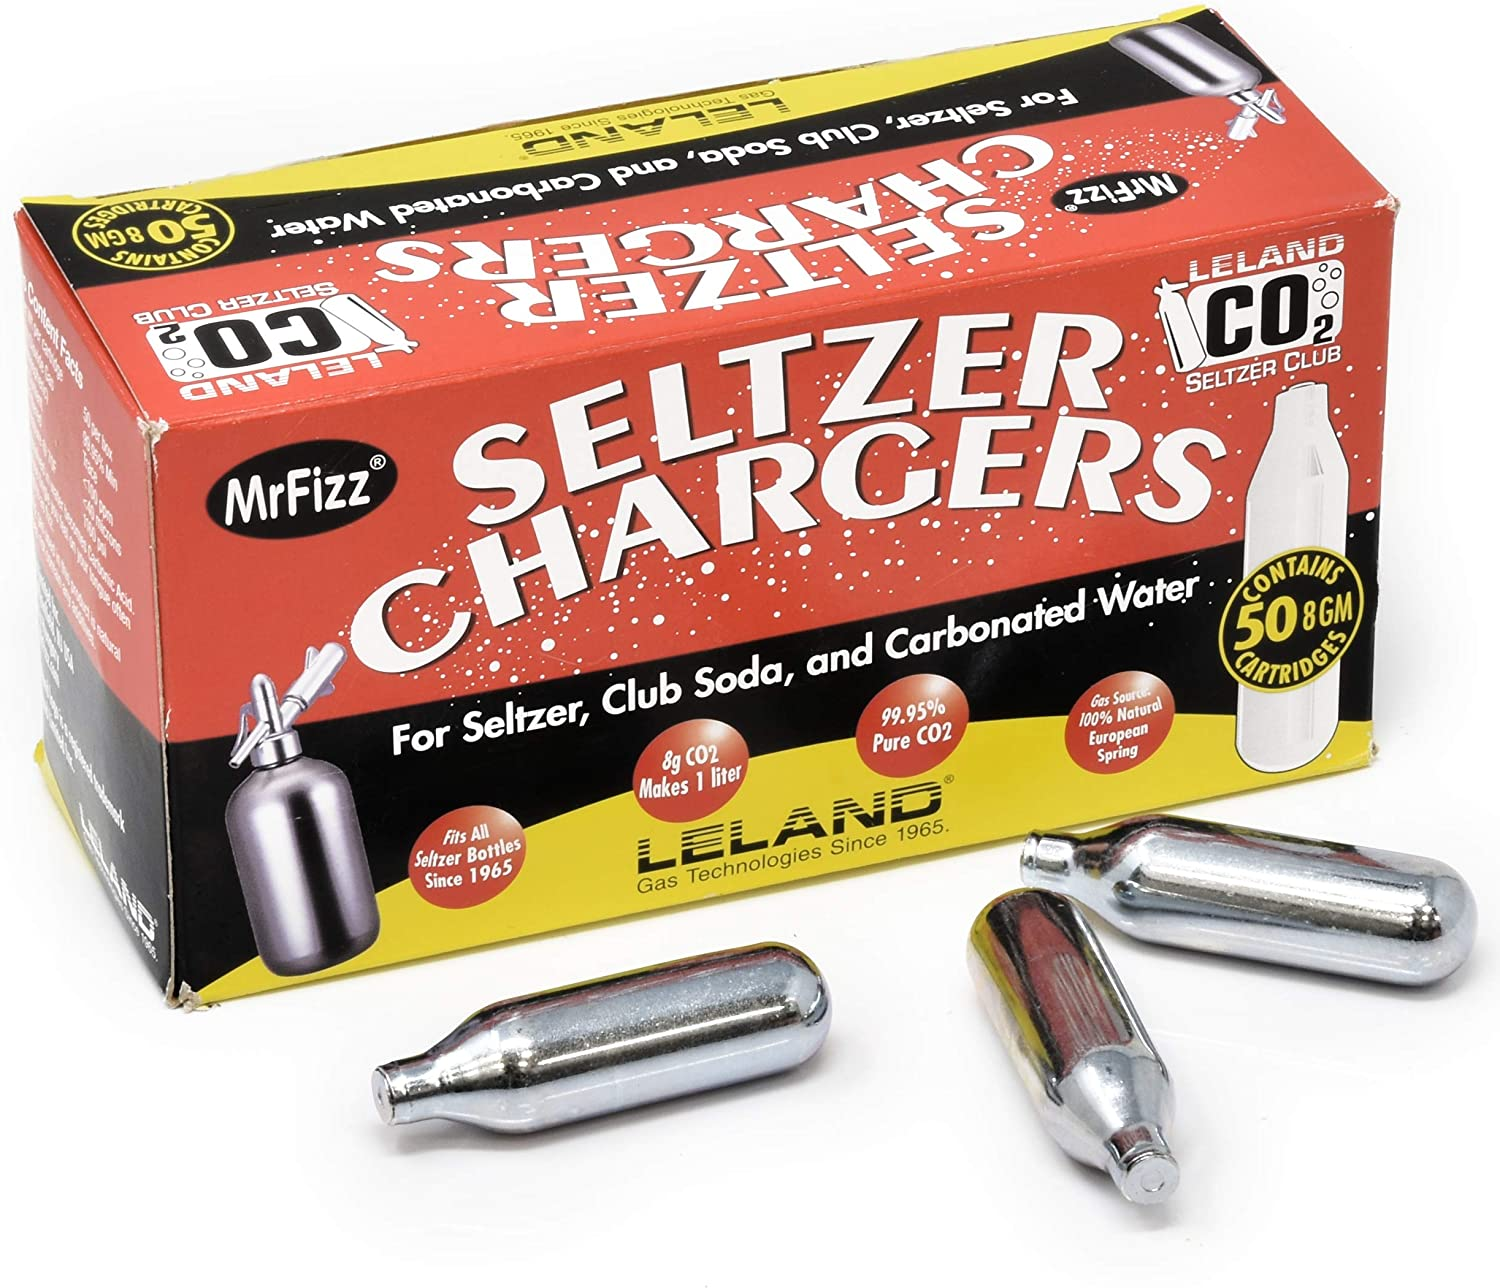 Leland Soda Chargers Seltzer Chargers Co2, 200 Count